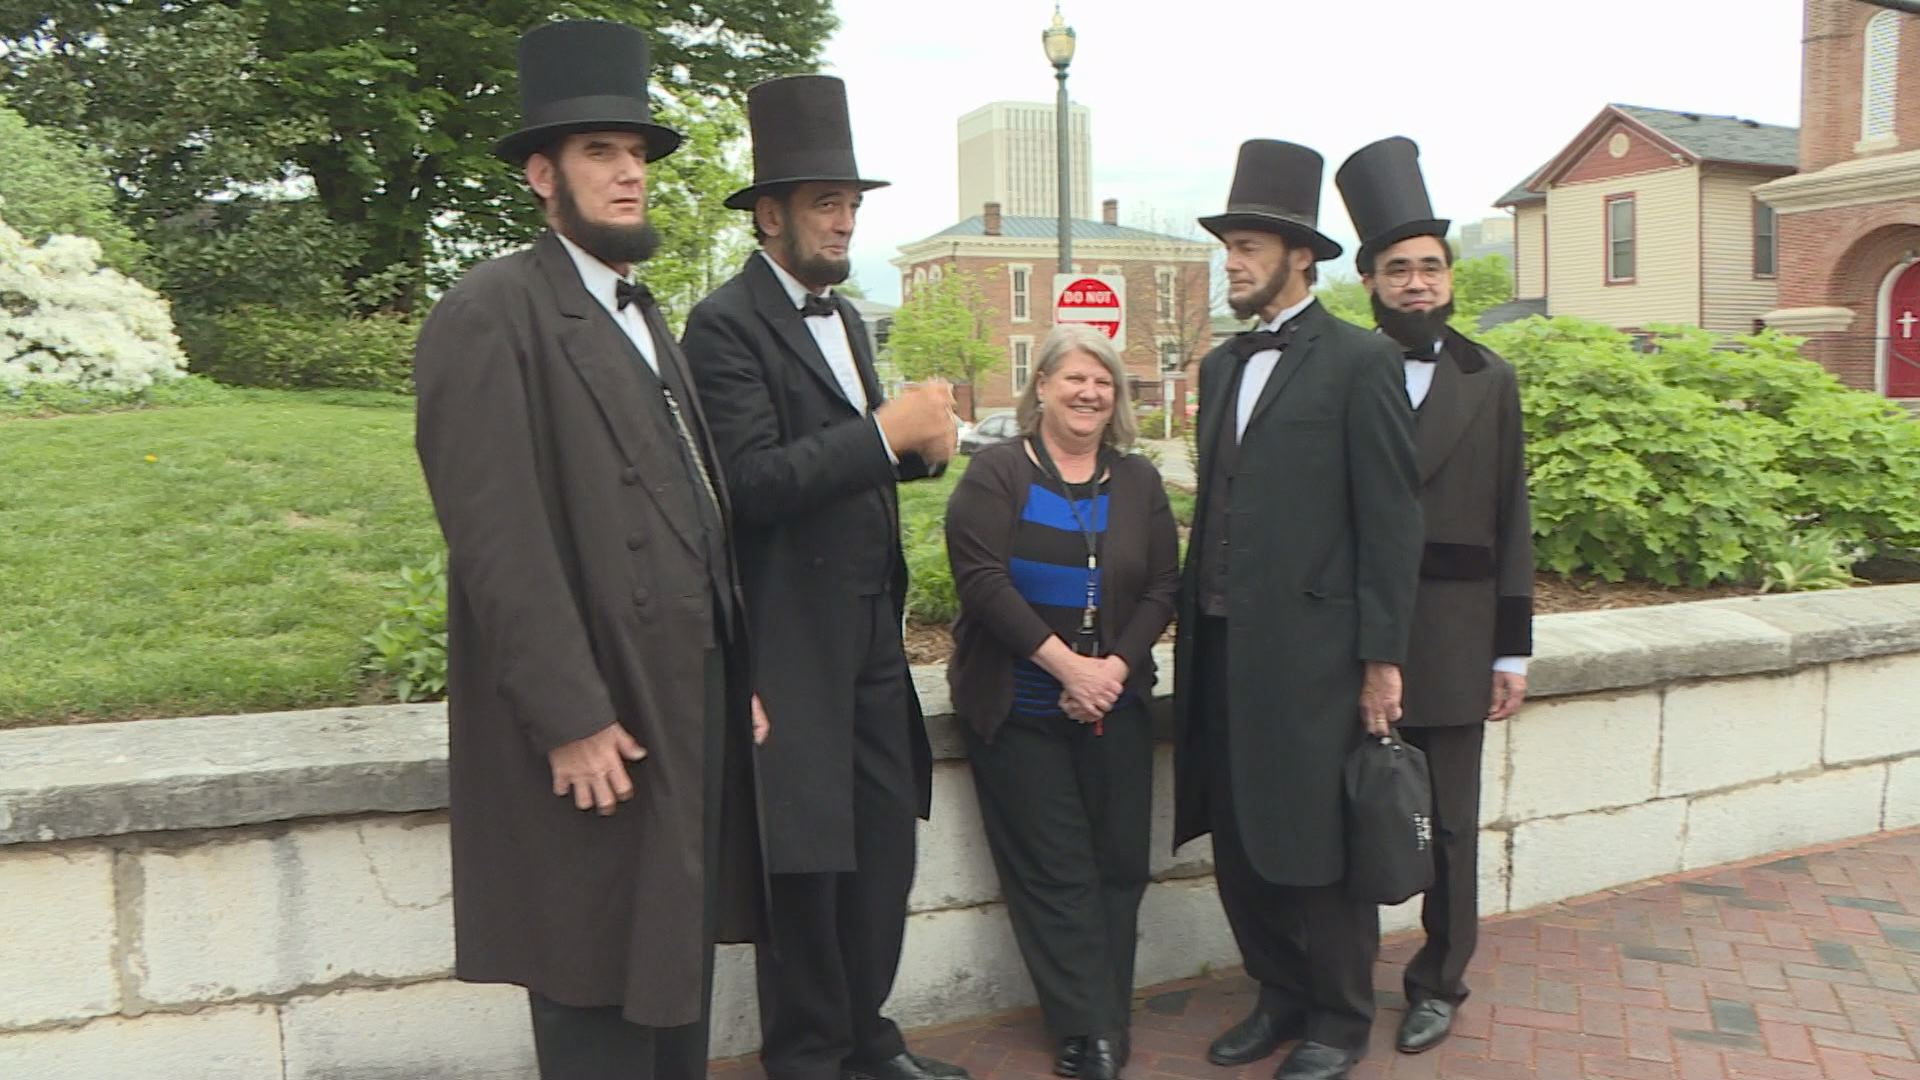 The Lincolns posed for many selfies in downtown Frankfort.